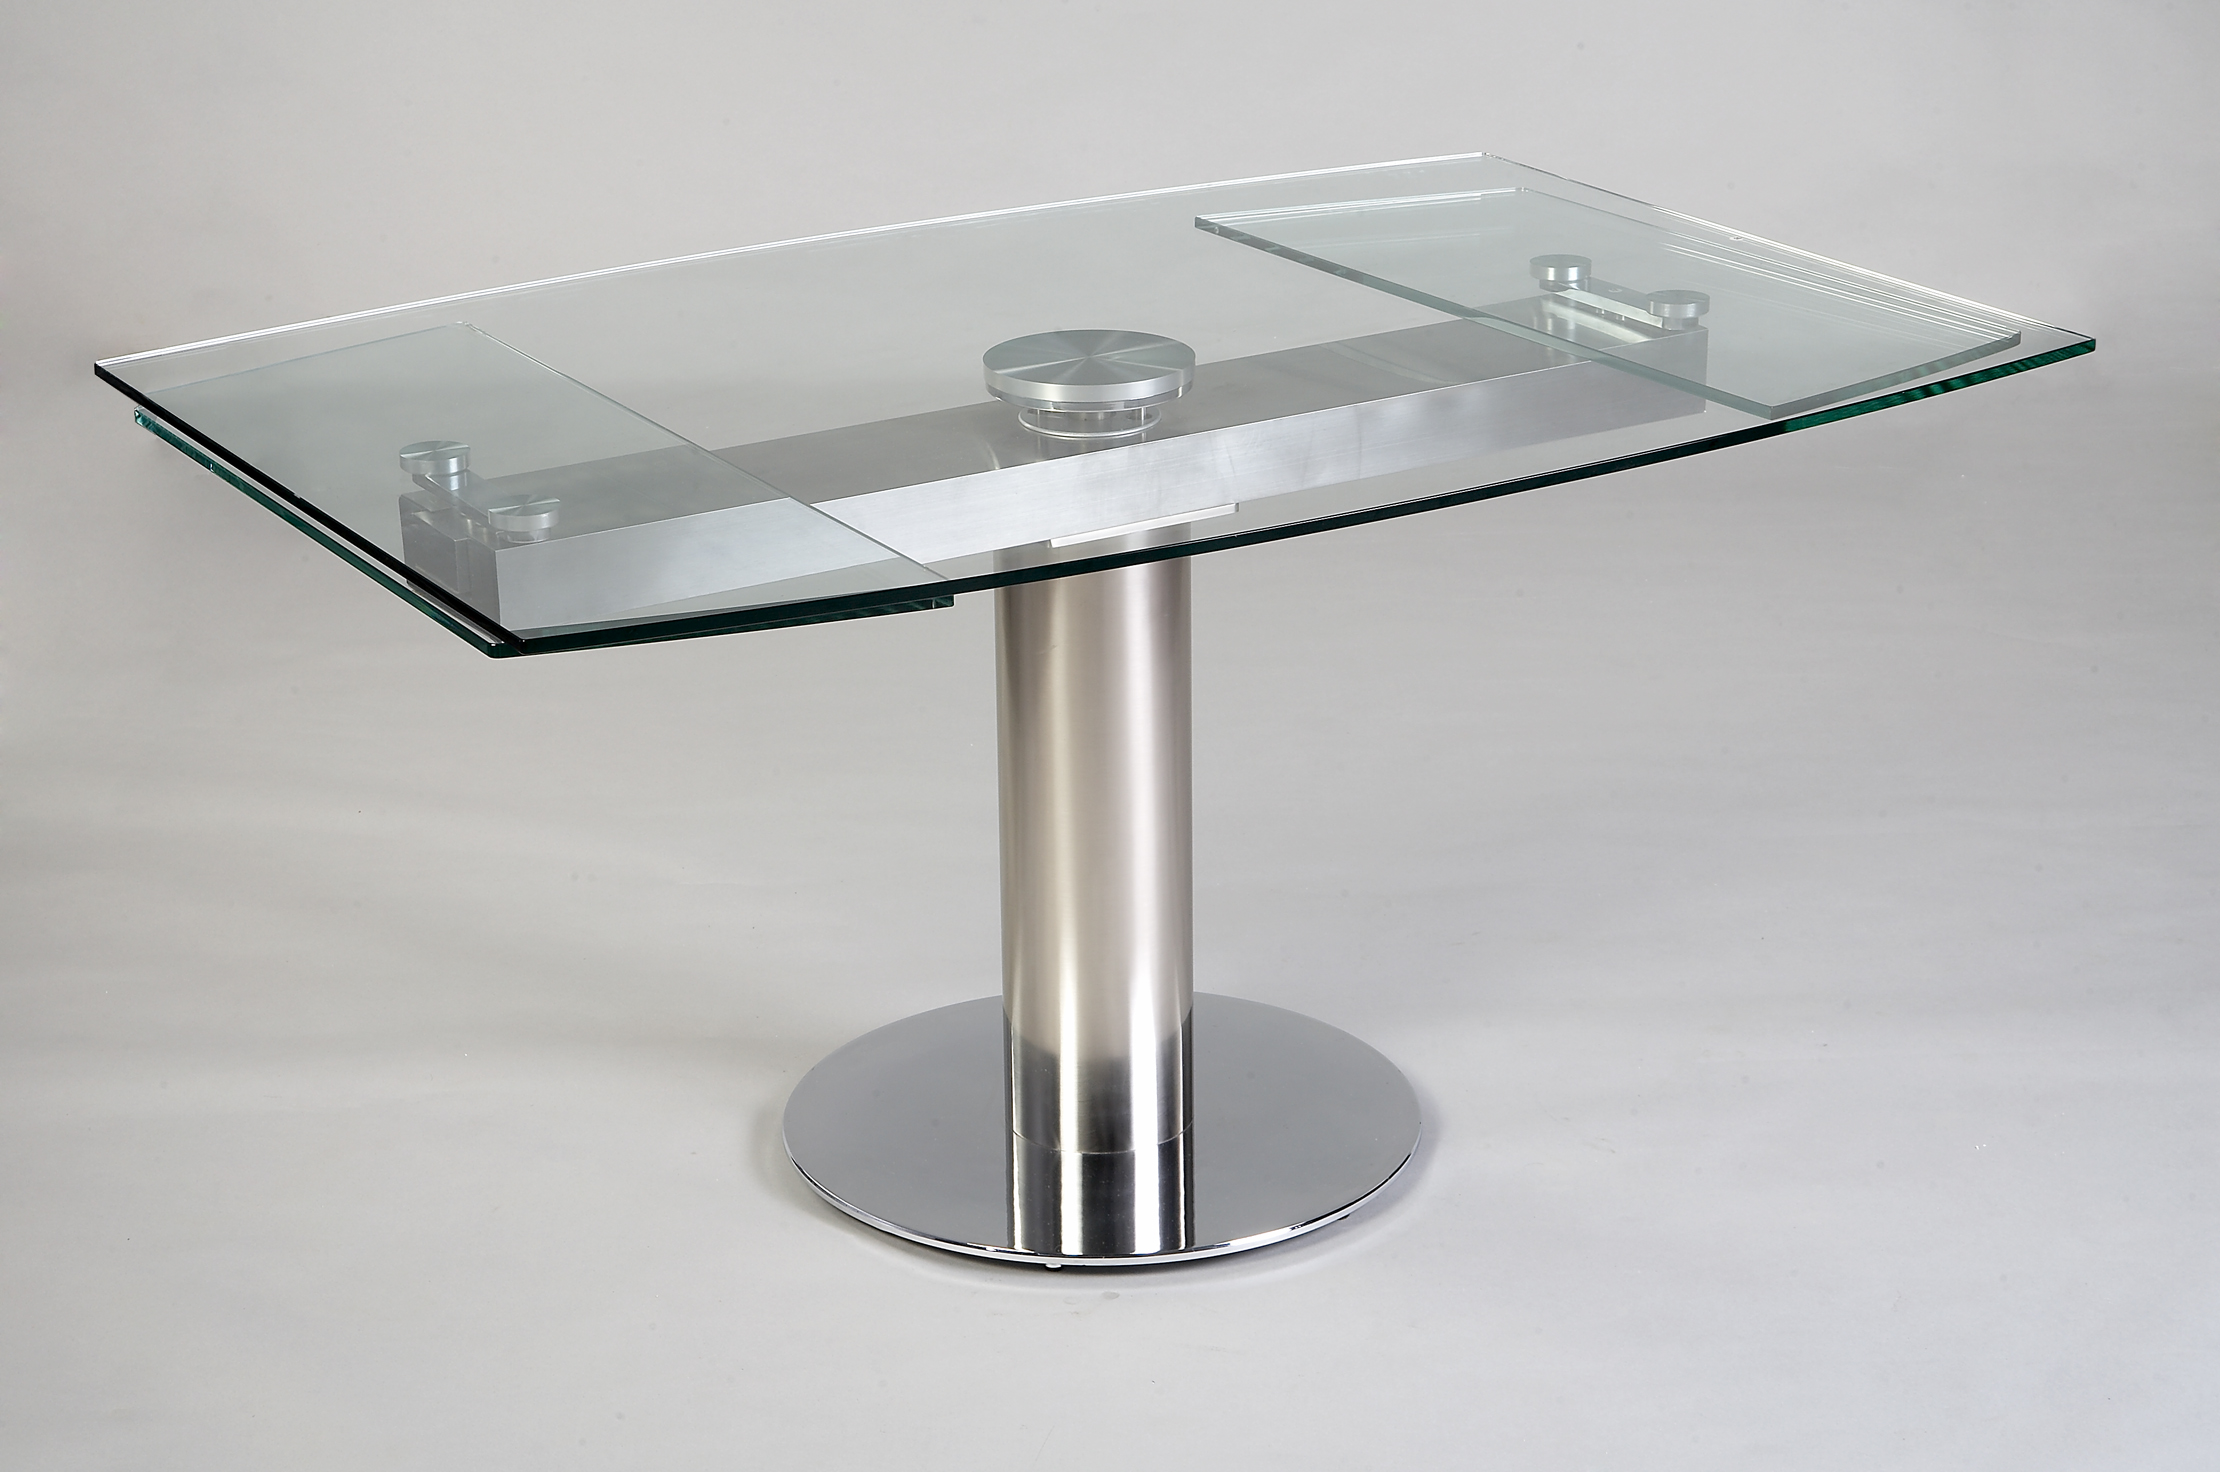 Table contemporaine en verre avec rallonge for Table contemporaine